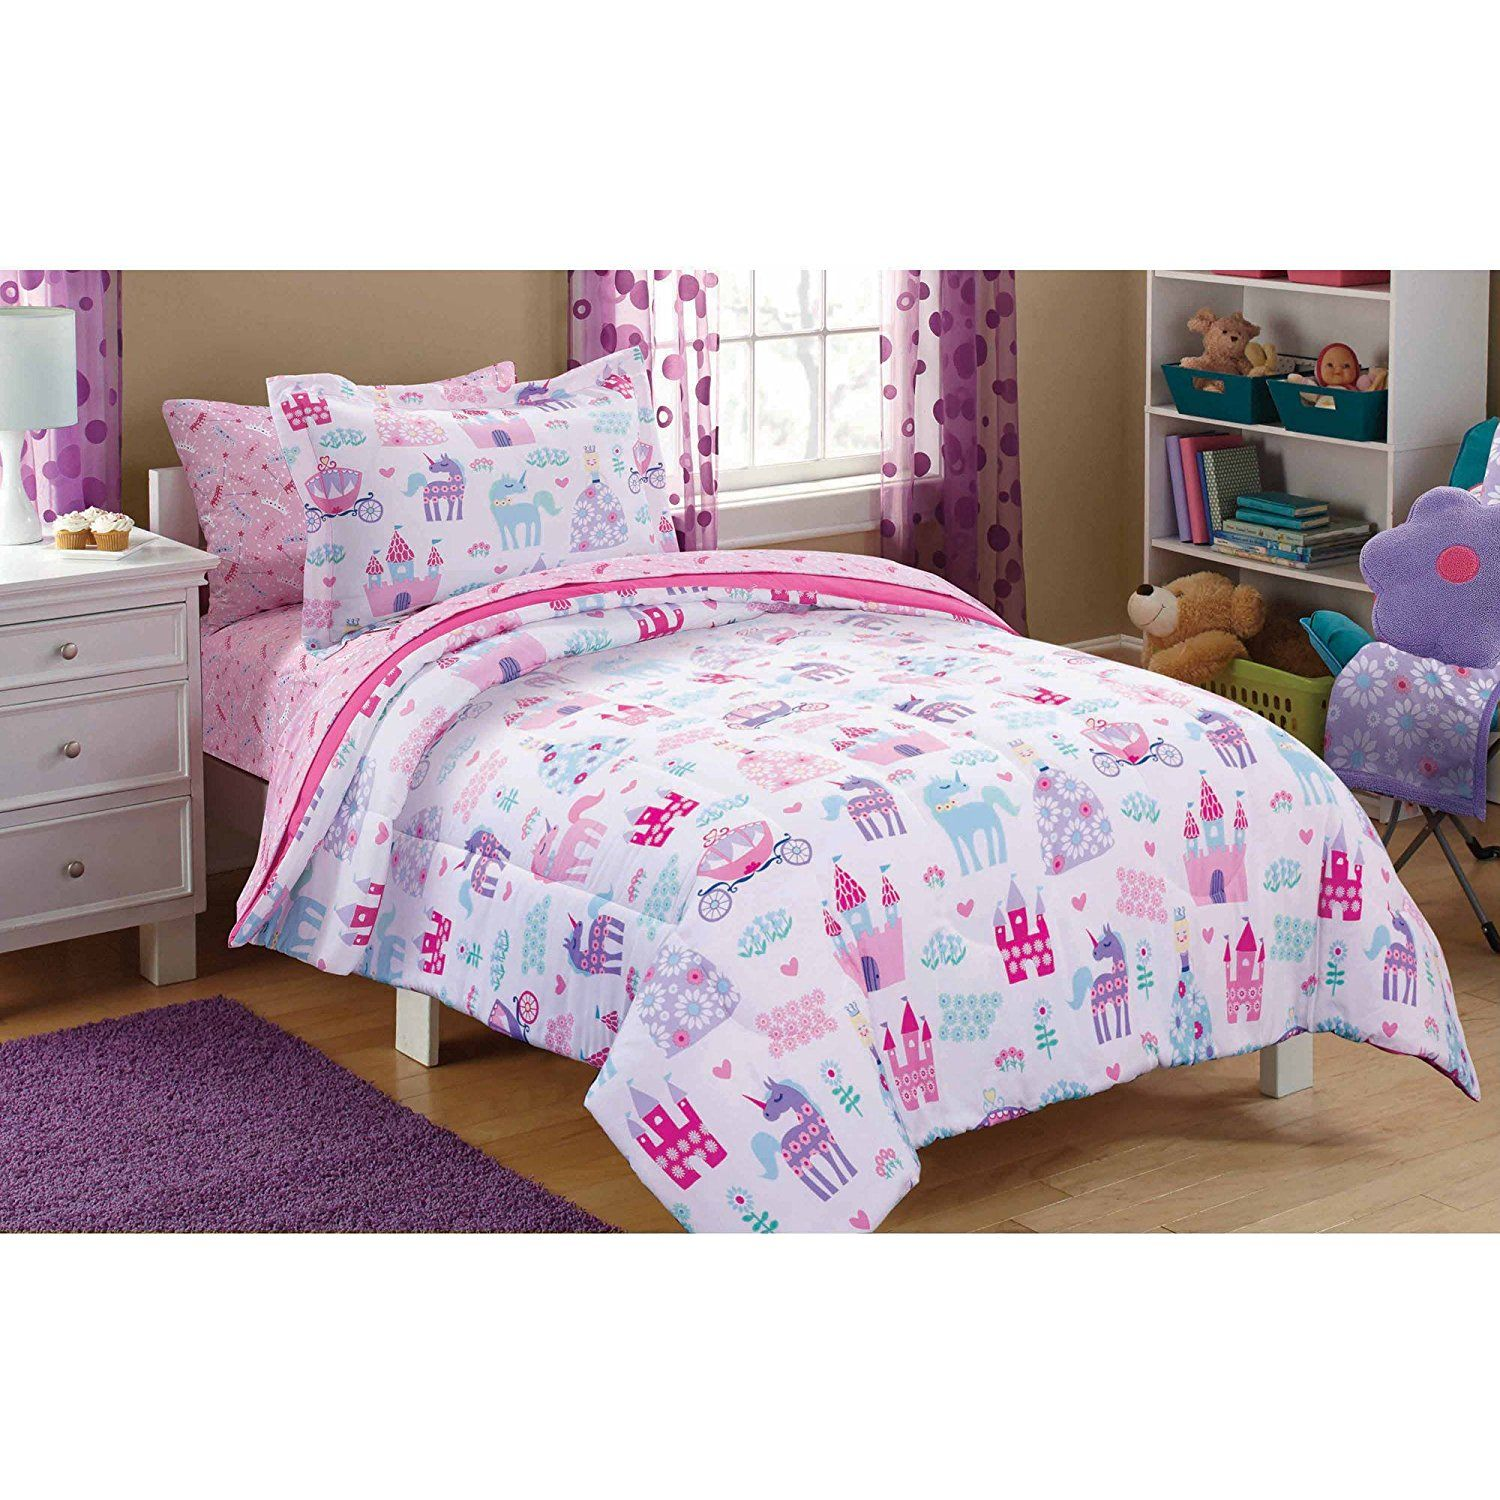 Amazon Mainstays Kids Pretty Princess Bed in a Bag Bedding Set